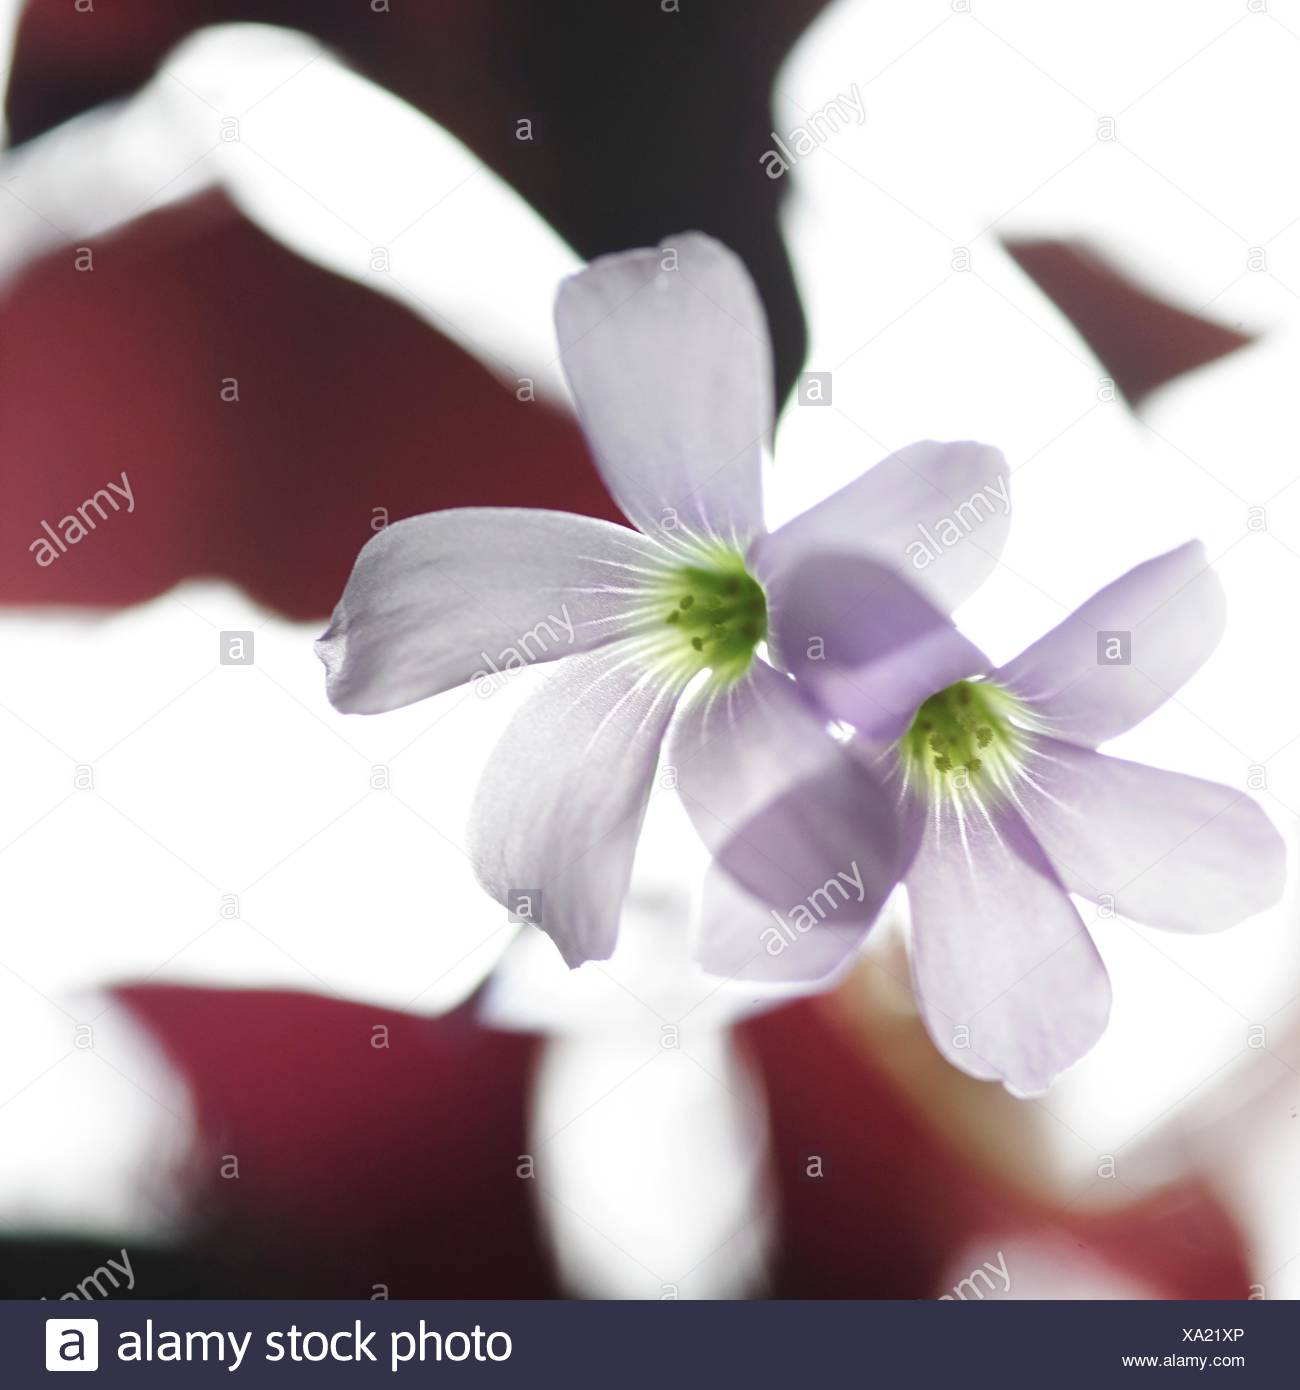 Transparent purple flowers and burgundy red leaves - Stock Image